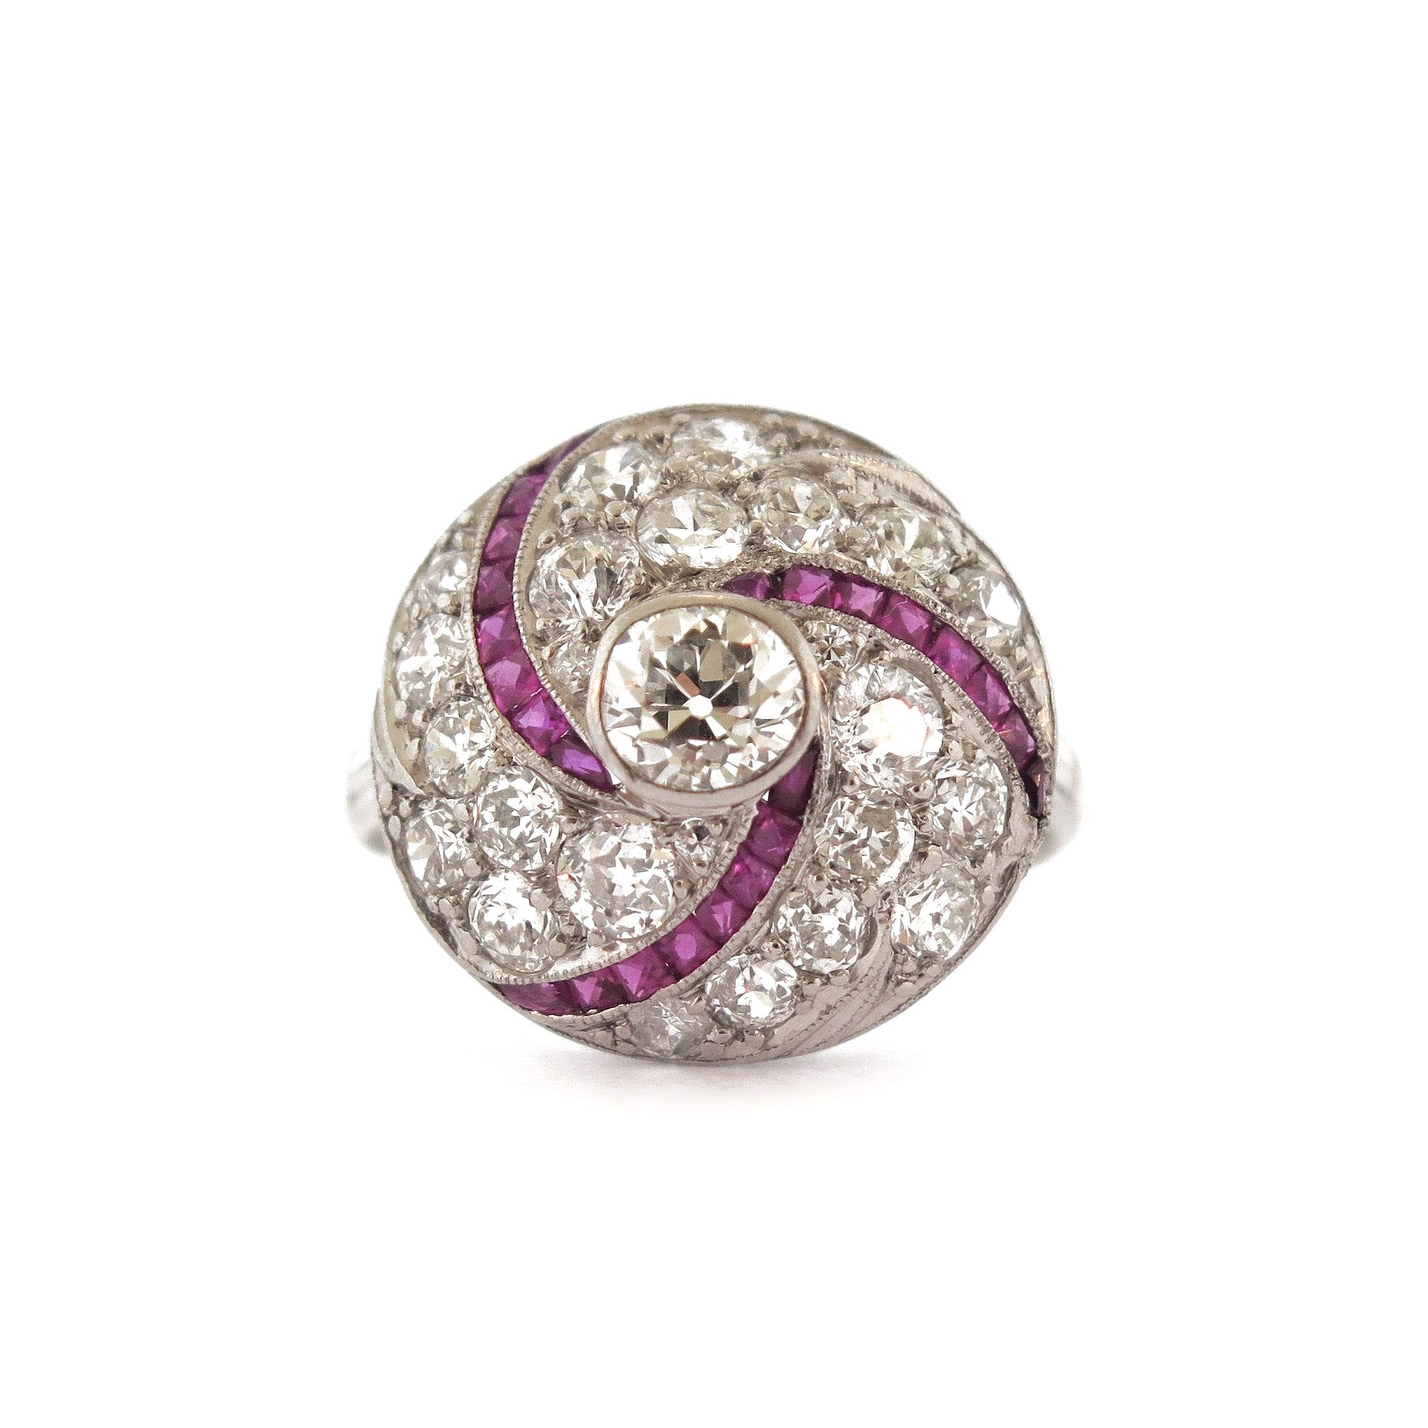 Deco Tornado Ring with Ruby Accents